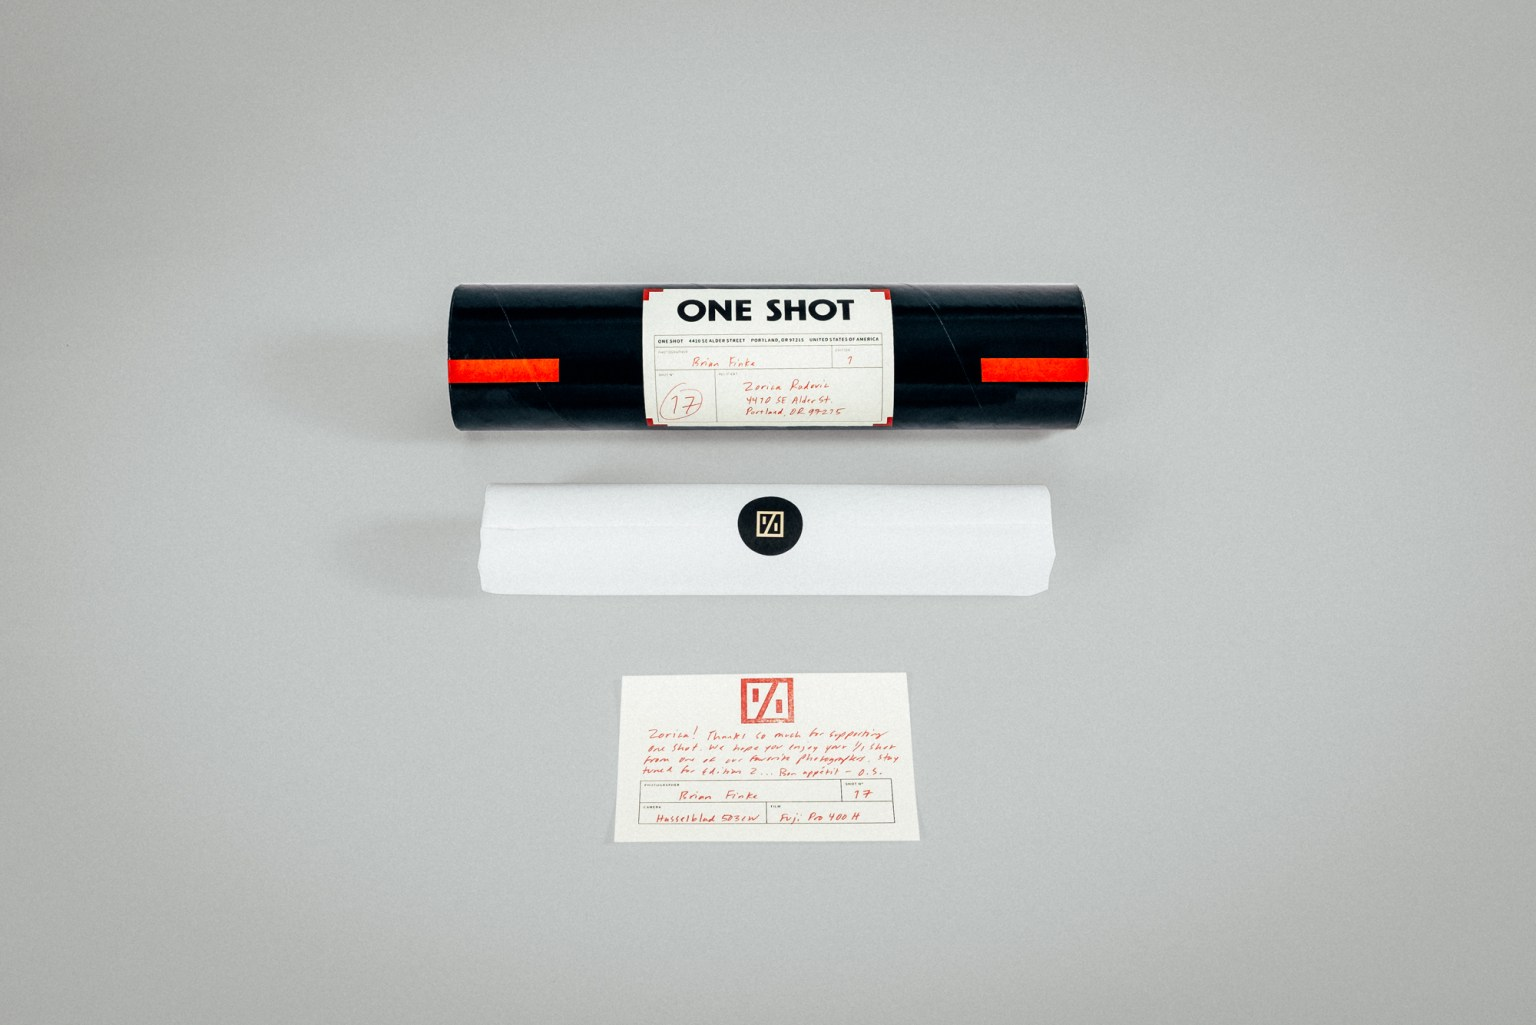 One Shot Editions